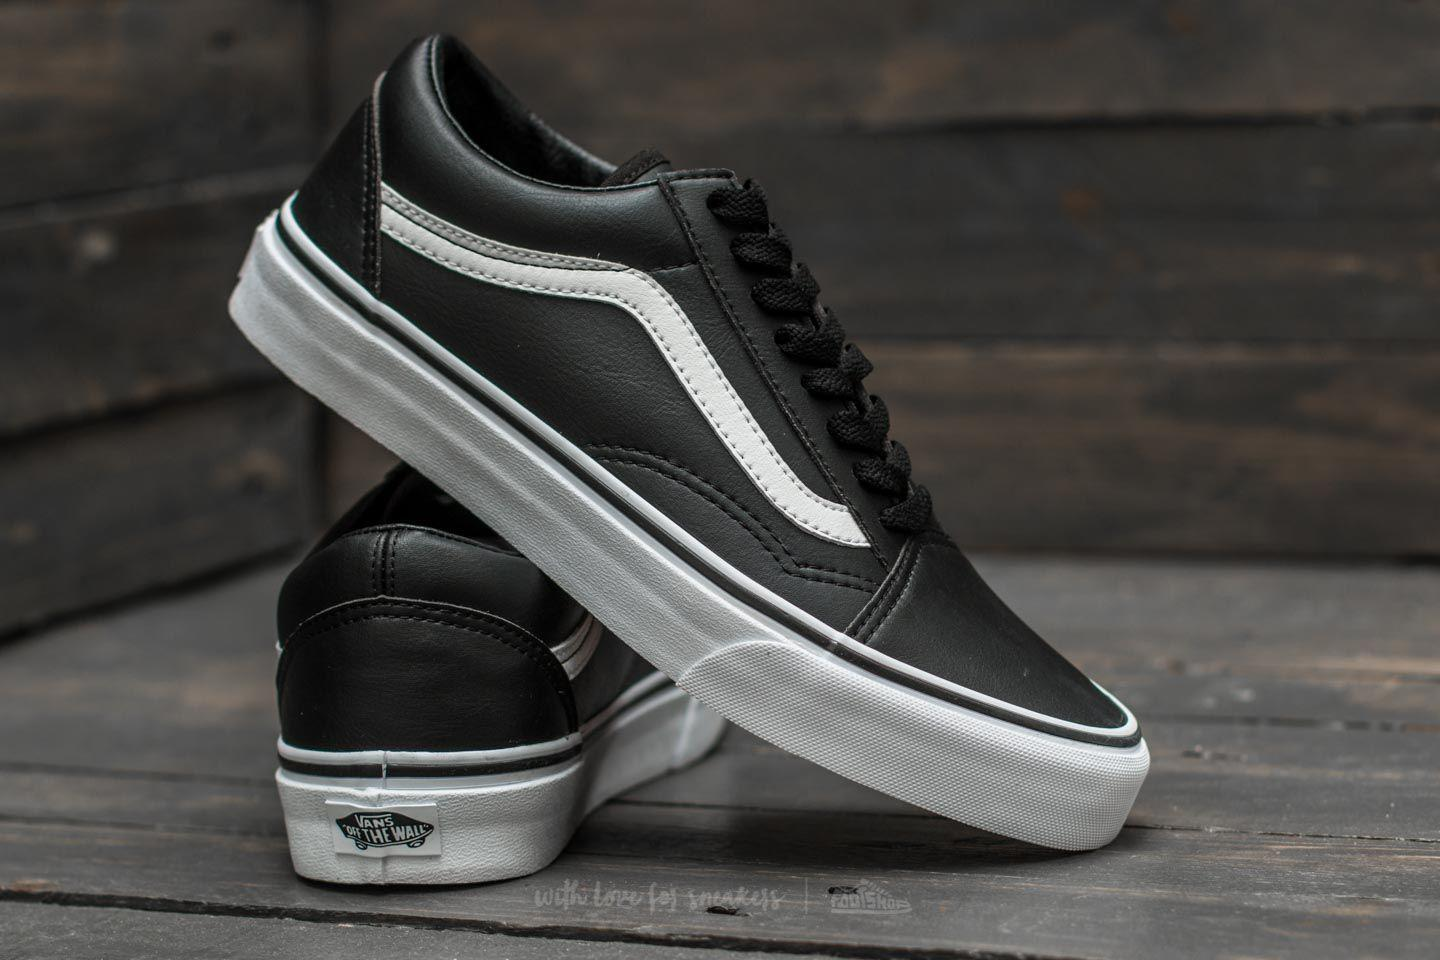 248c8eb096 Lyst - Vans Old Skool (classic Tumble) Black  True White in Black ...